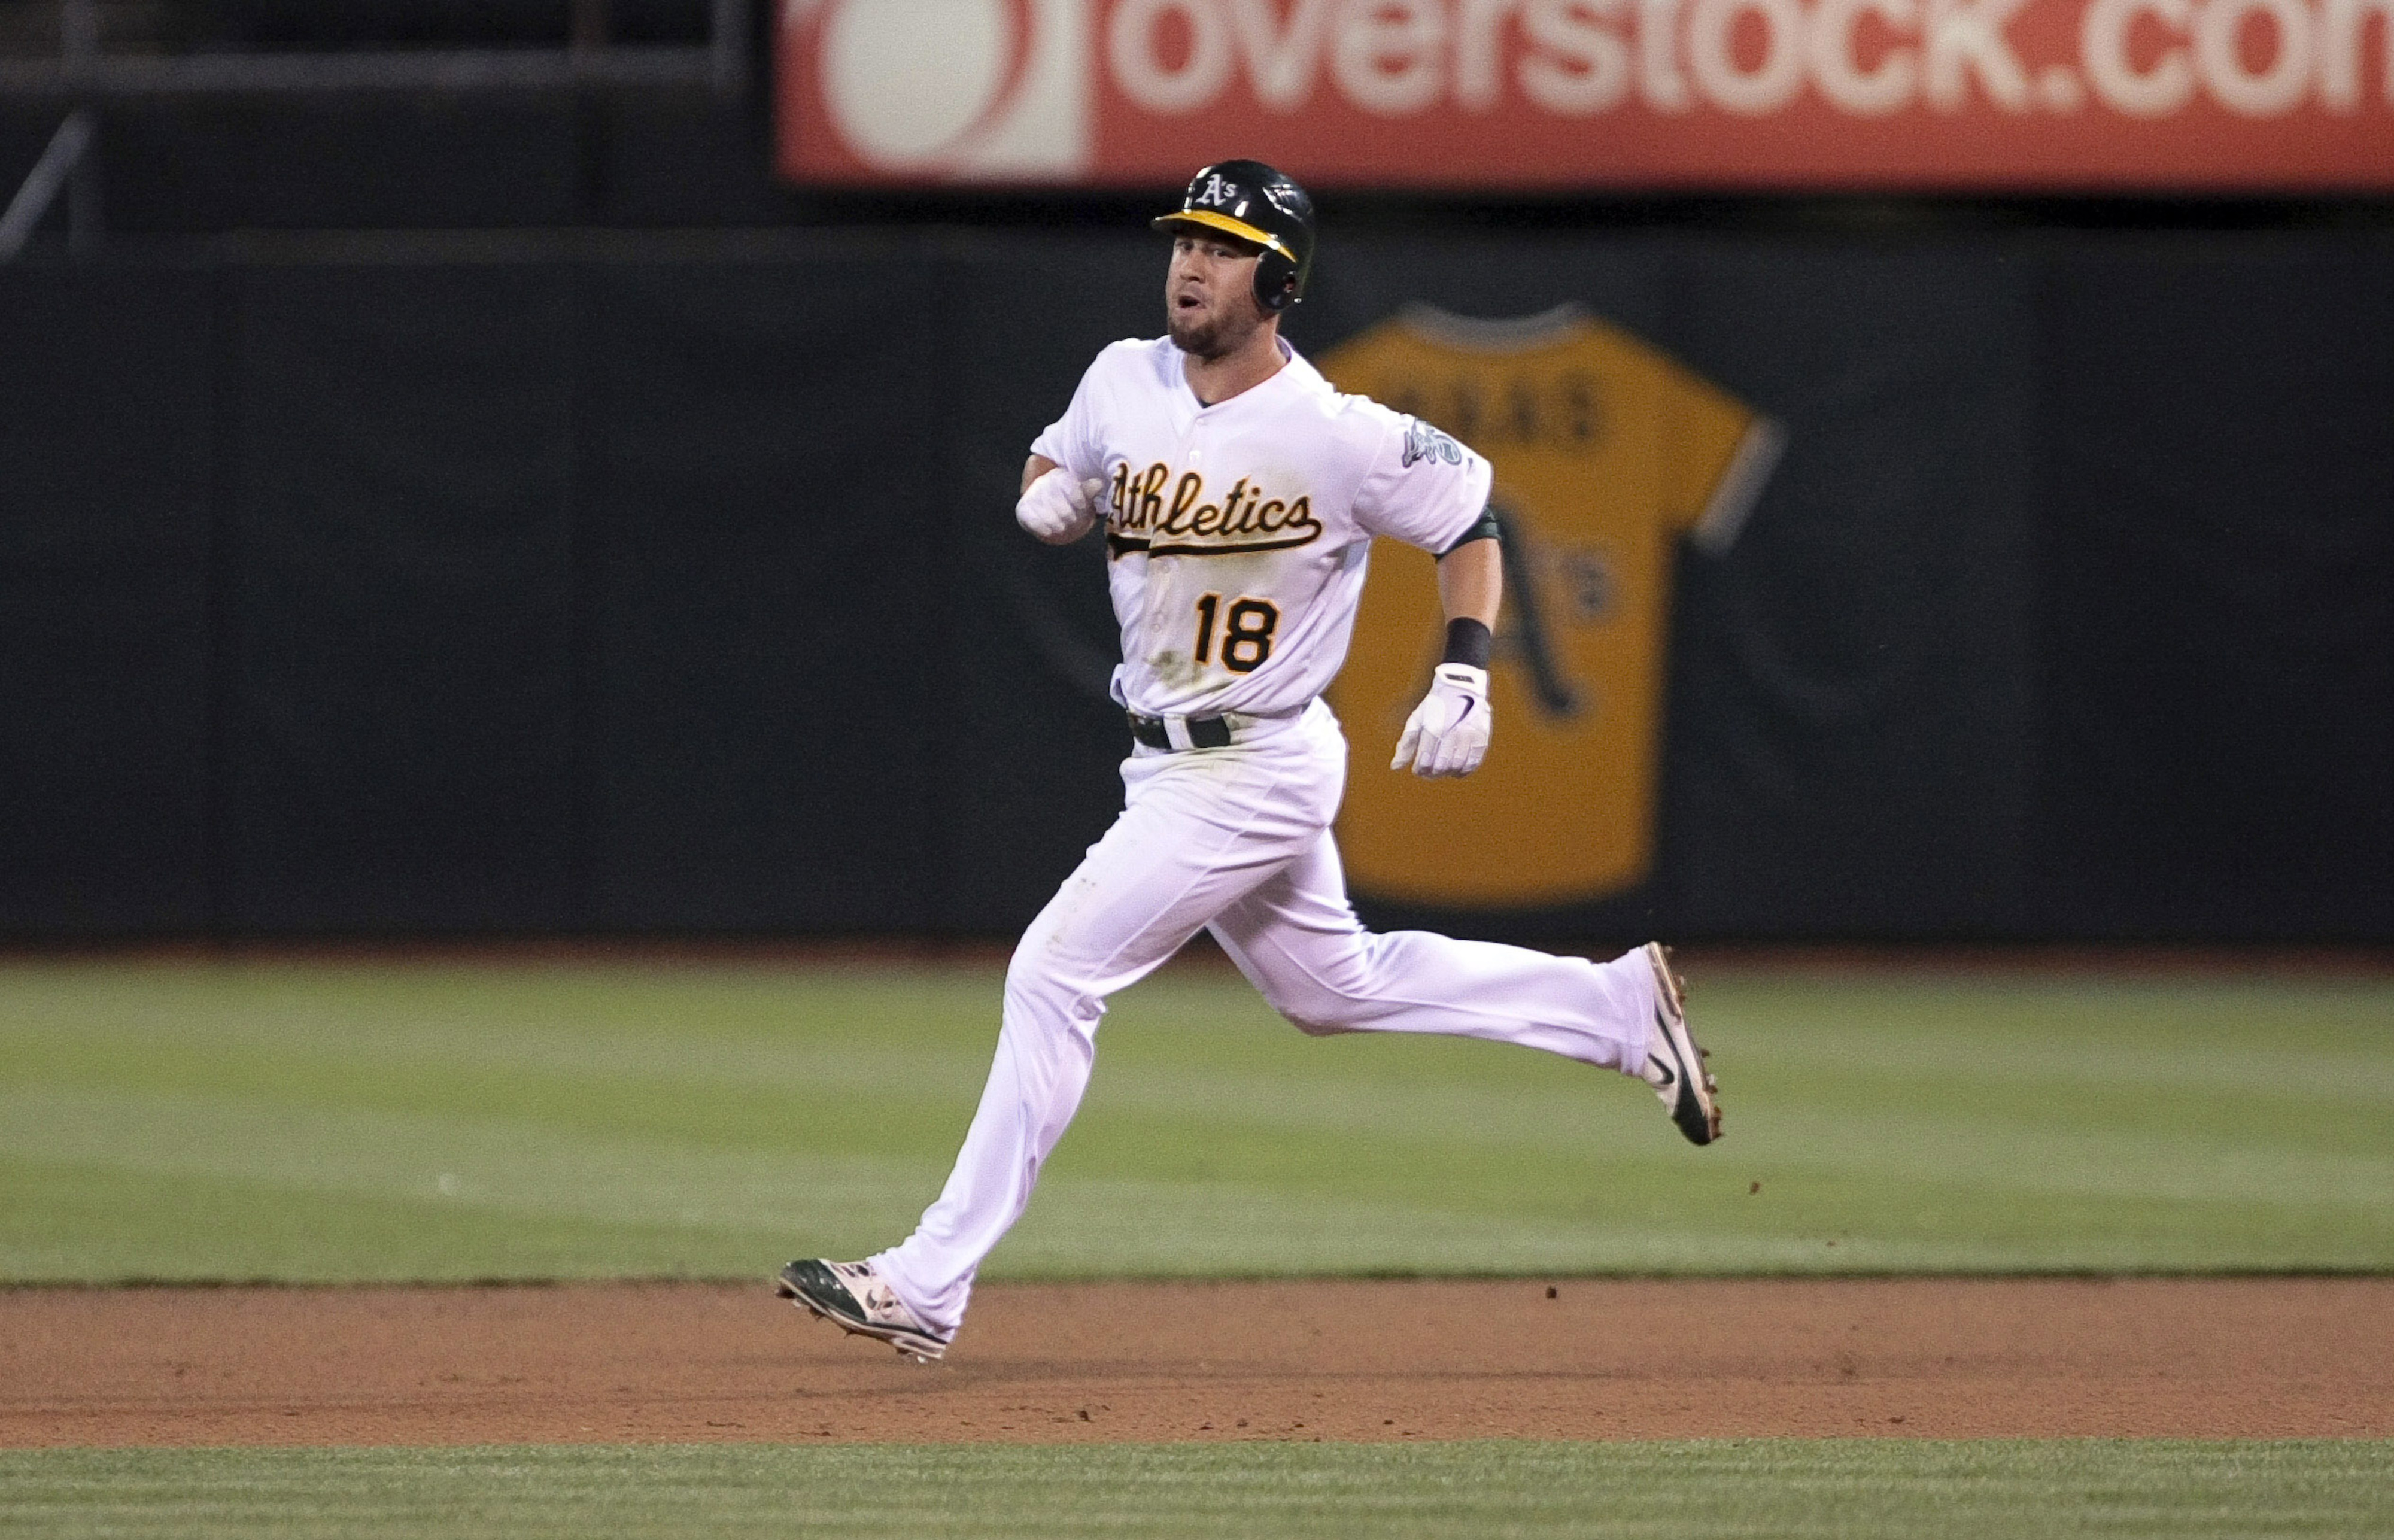 July 30, 2012; Oakland, CA, USA; Oakland Athletics shortstop Brandon Hicks (18) rounds the bases on a solo home run against the Tampa Bay Rays during the seventh inning at O.co Coliseum. Mandatory Credit: Kelley L Cox-US PRESSWIRE